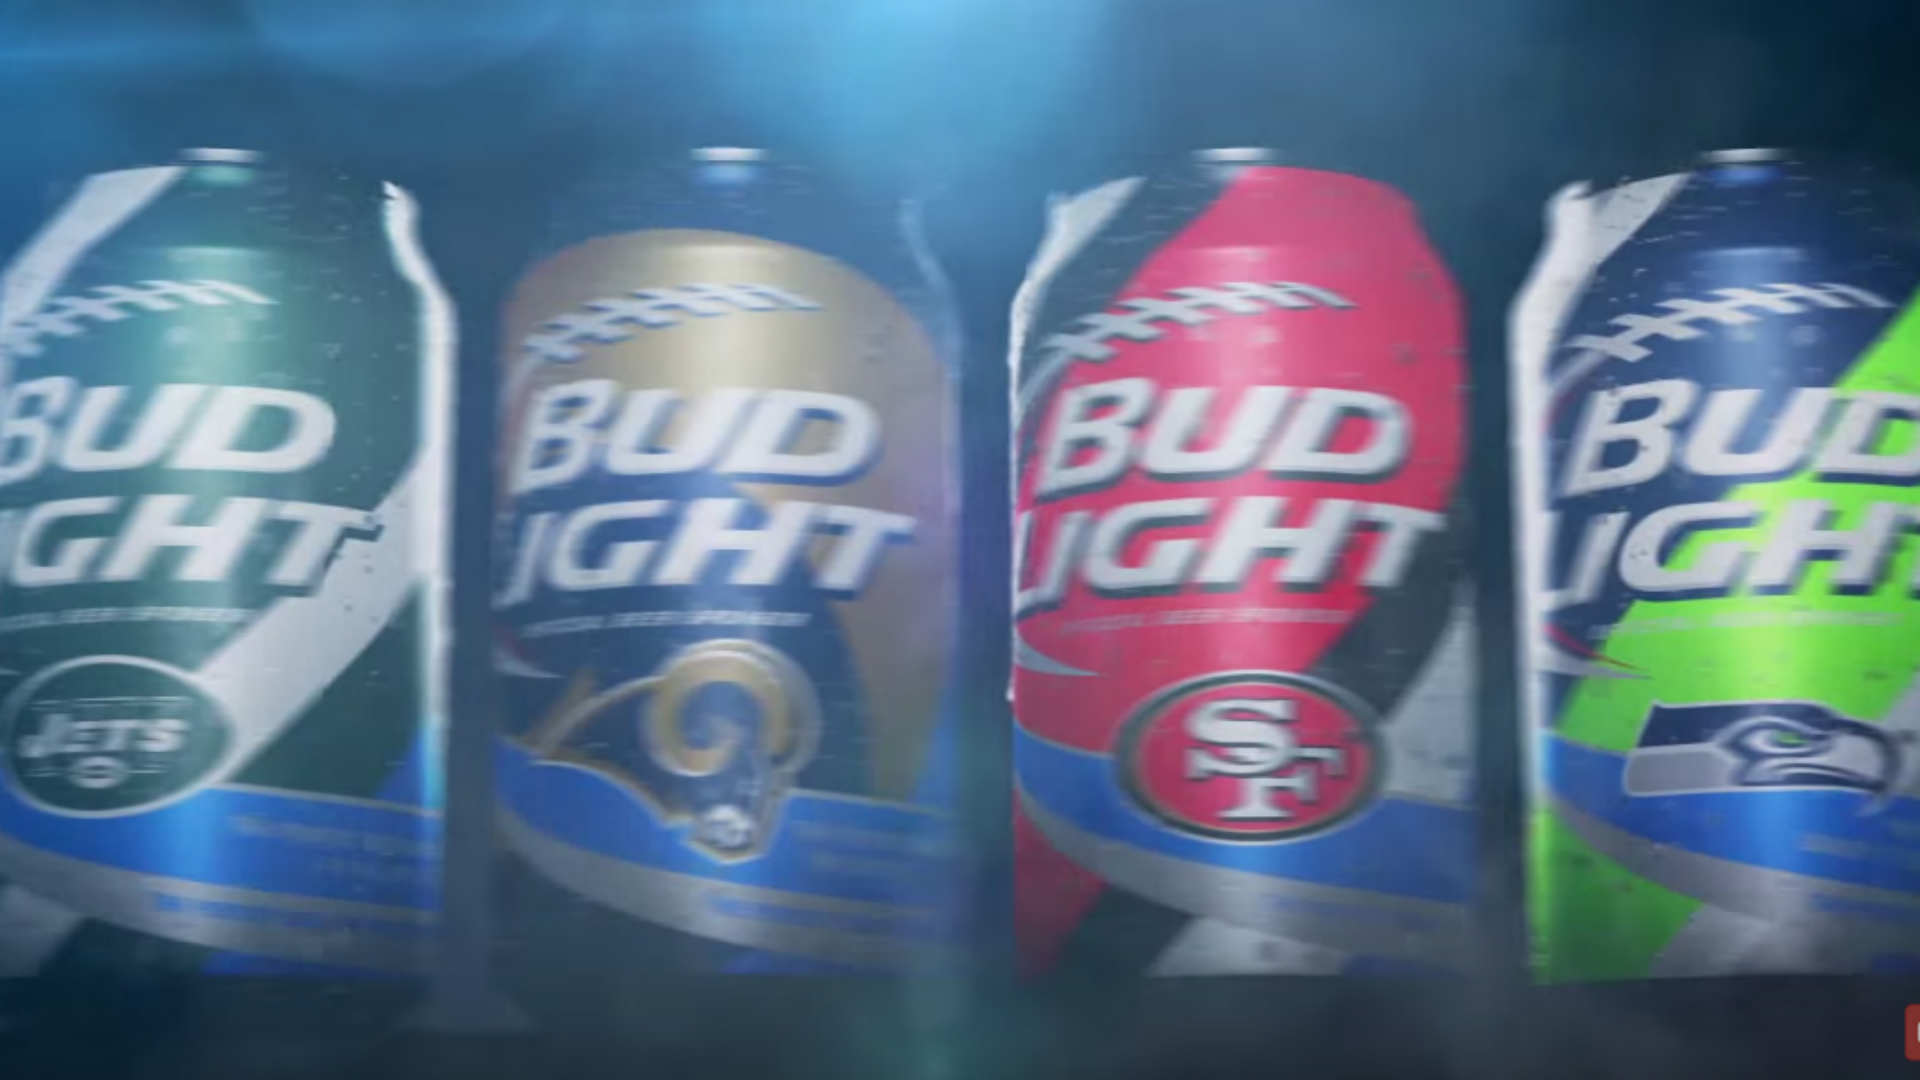 Charming ... Bud Light 08202015 Us News Youtube Ftr Pictures Gallery